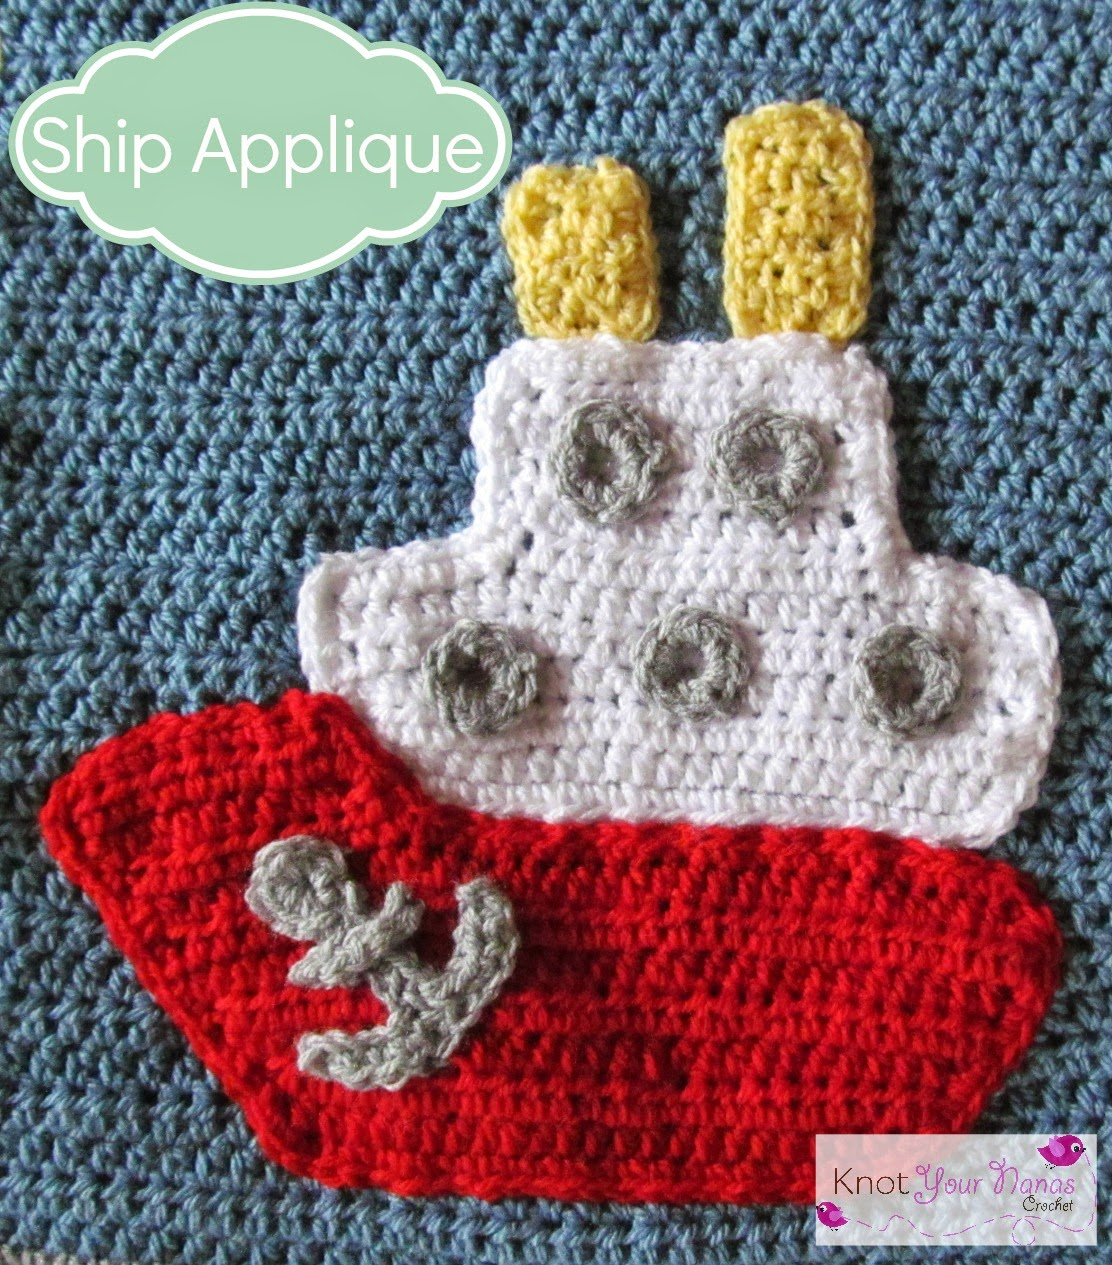 Crochet-Ship-Applique